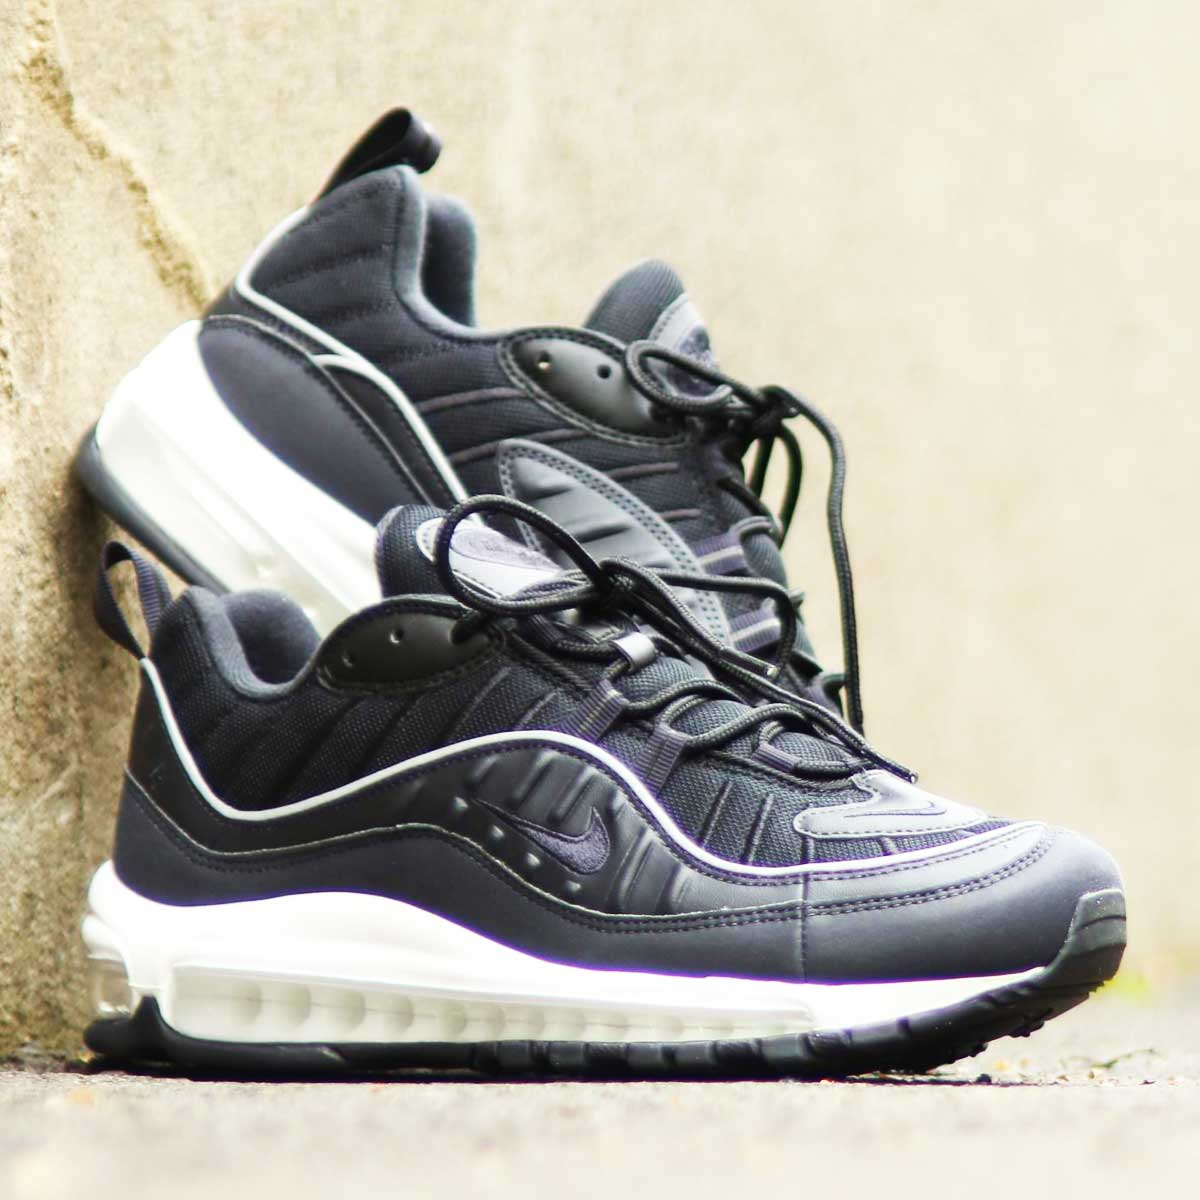 NIKE AIR MAX 98 (ナイキ エア マックス 98)OIL GREY/OIL GREY-BLACK-SUMMIT WHITE【メンズ スニーカー】19SP-I